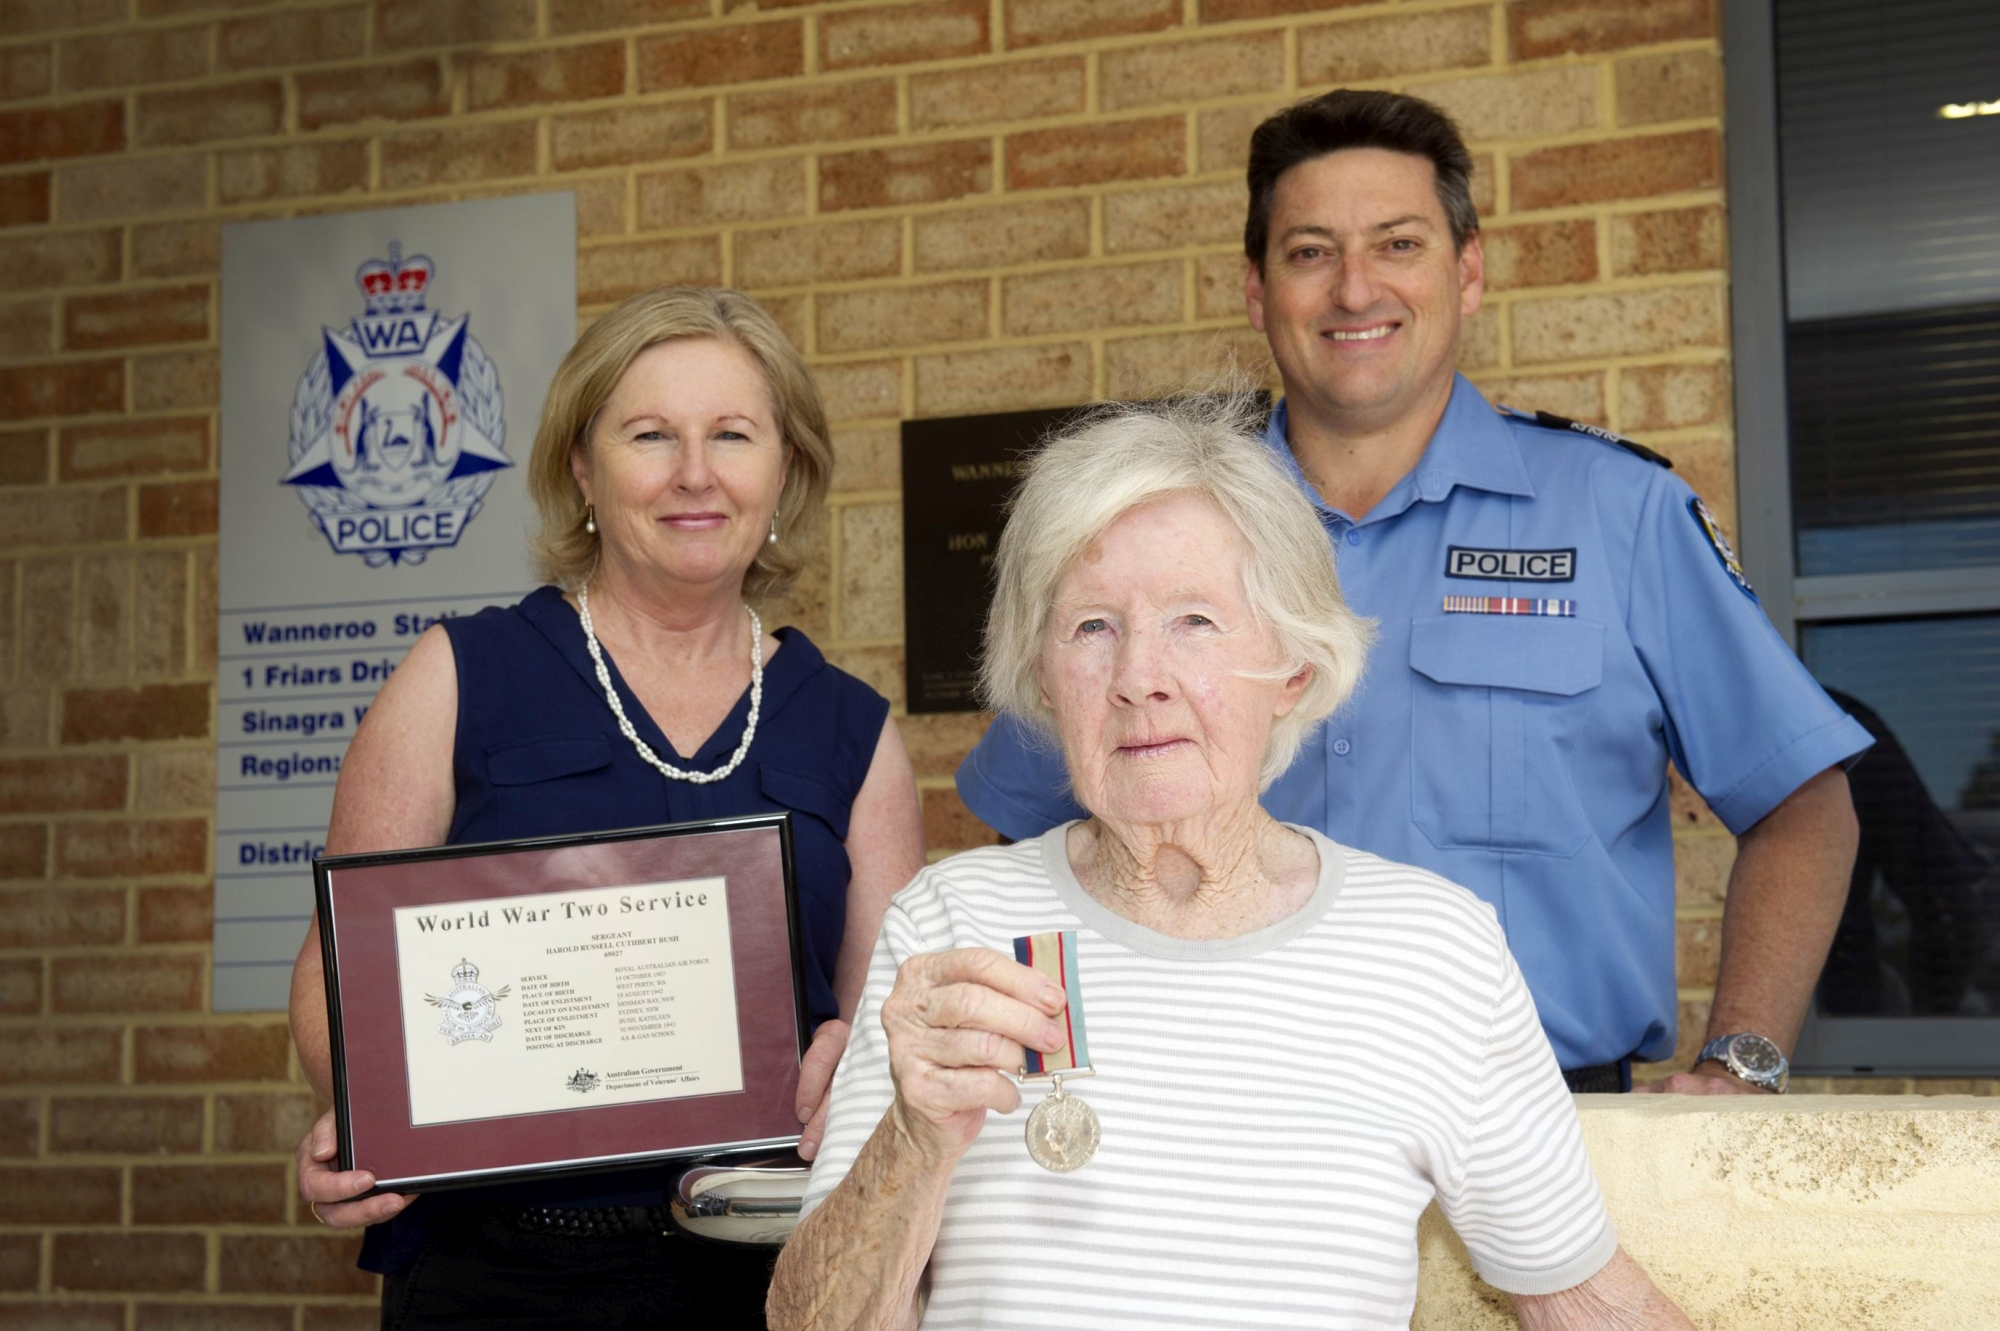 Sandra Kelly, Shirley Kilgariff and Sergeant Steve Walters. with the recovered war medal. Picture: Emma Reeves d411015